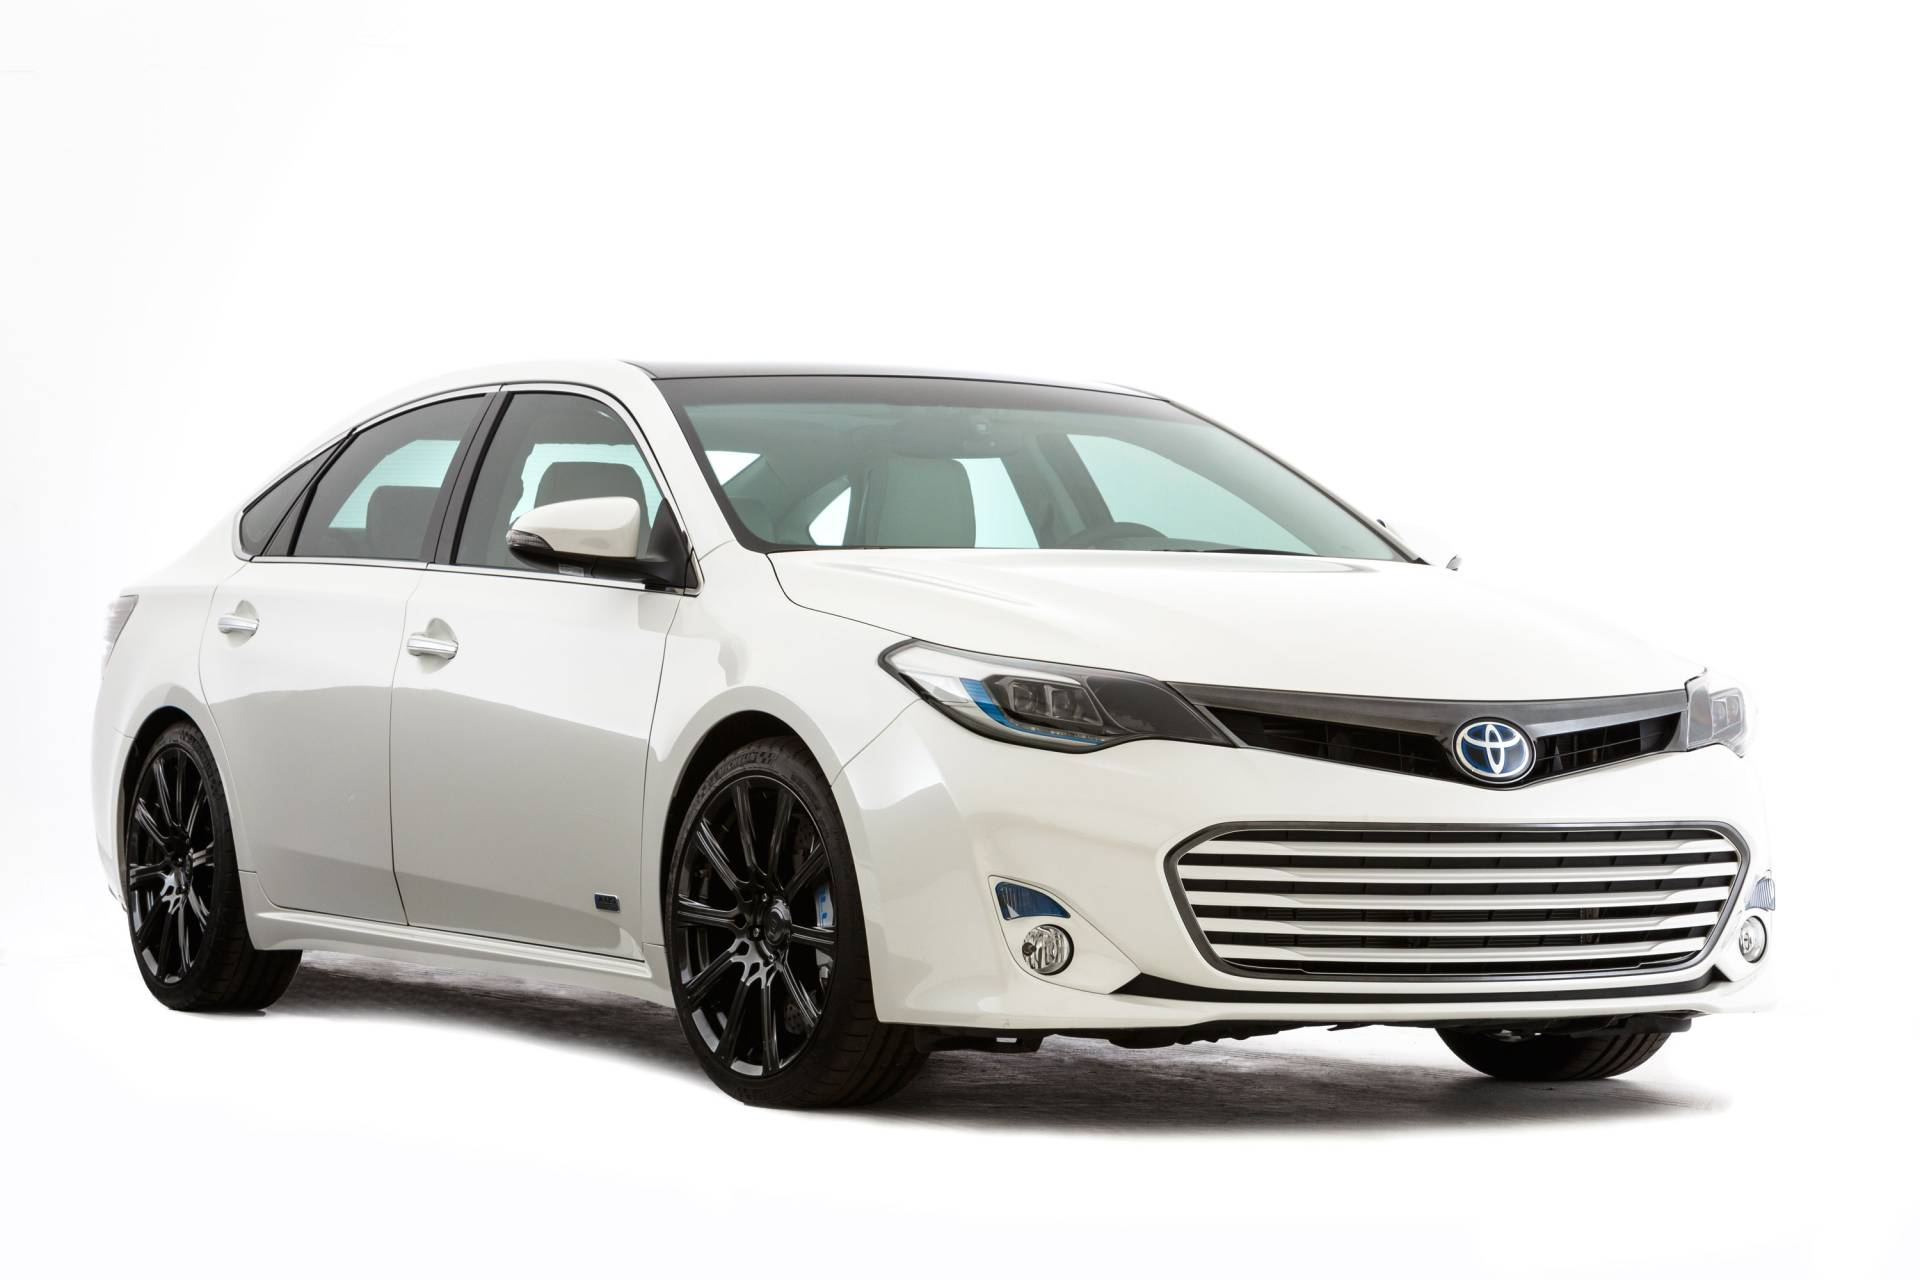 toyota yaris trd supercharger kit oli mesin untuk grand new avanza 2013 avalon edition news and information research